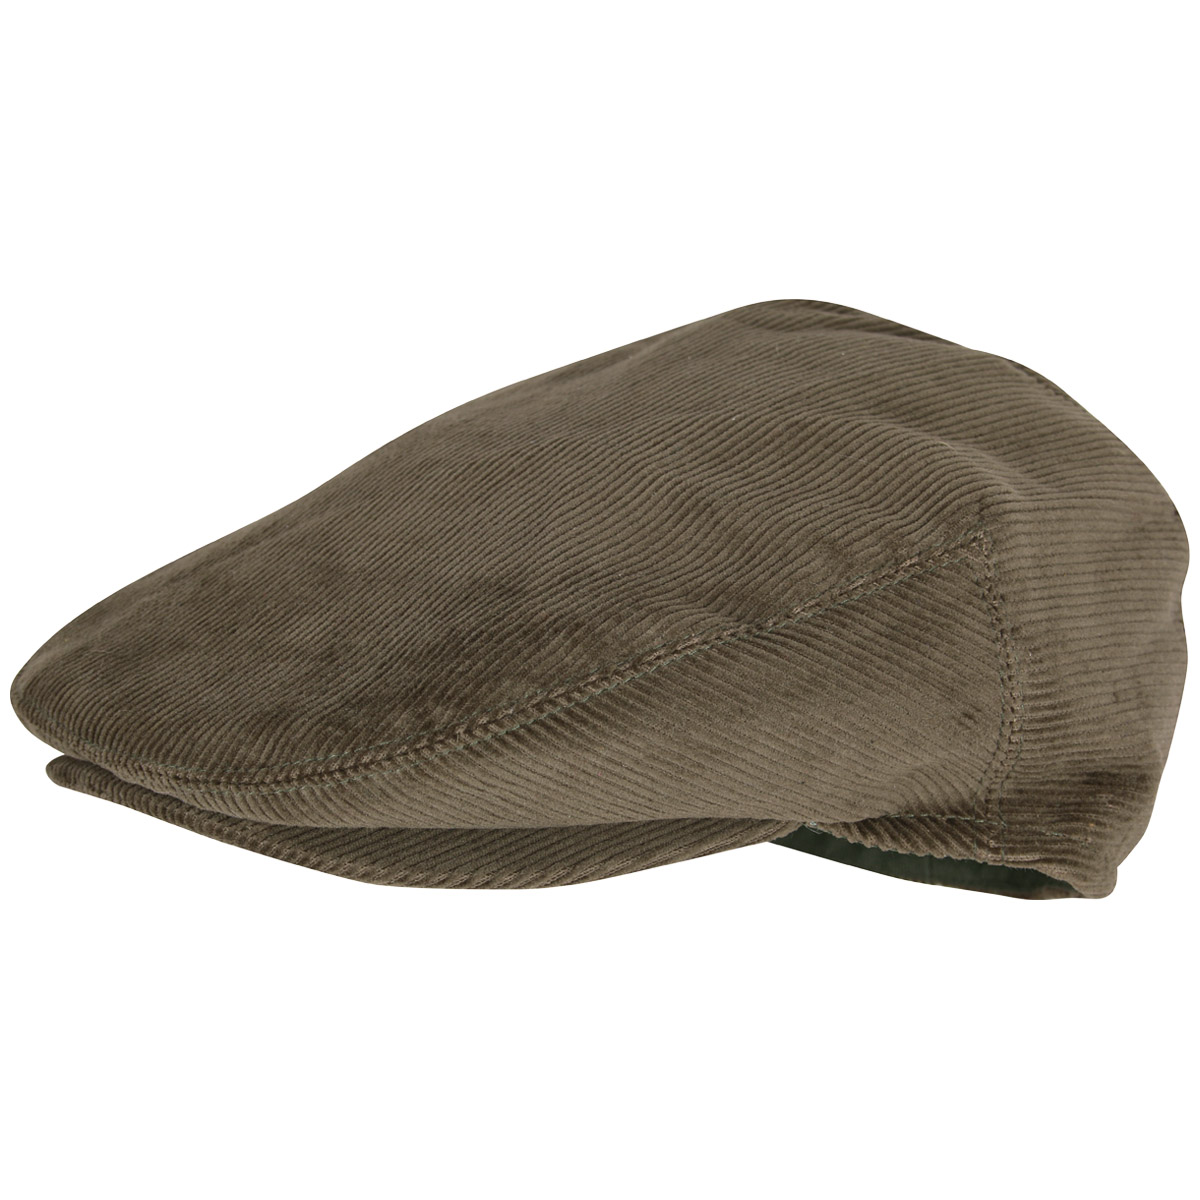 Details about Jack Pyke Corduroy Flat Cap Hunting Fishing Hiking Outdoors  Mens Hat Deep Olive d83c198f0f1